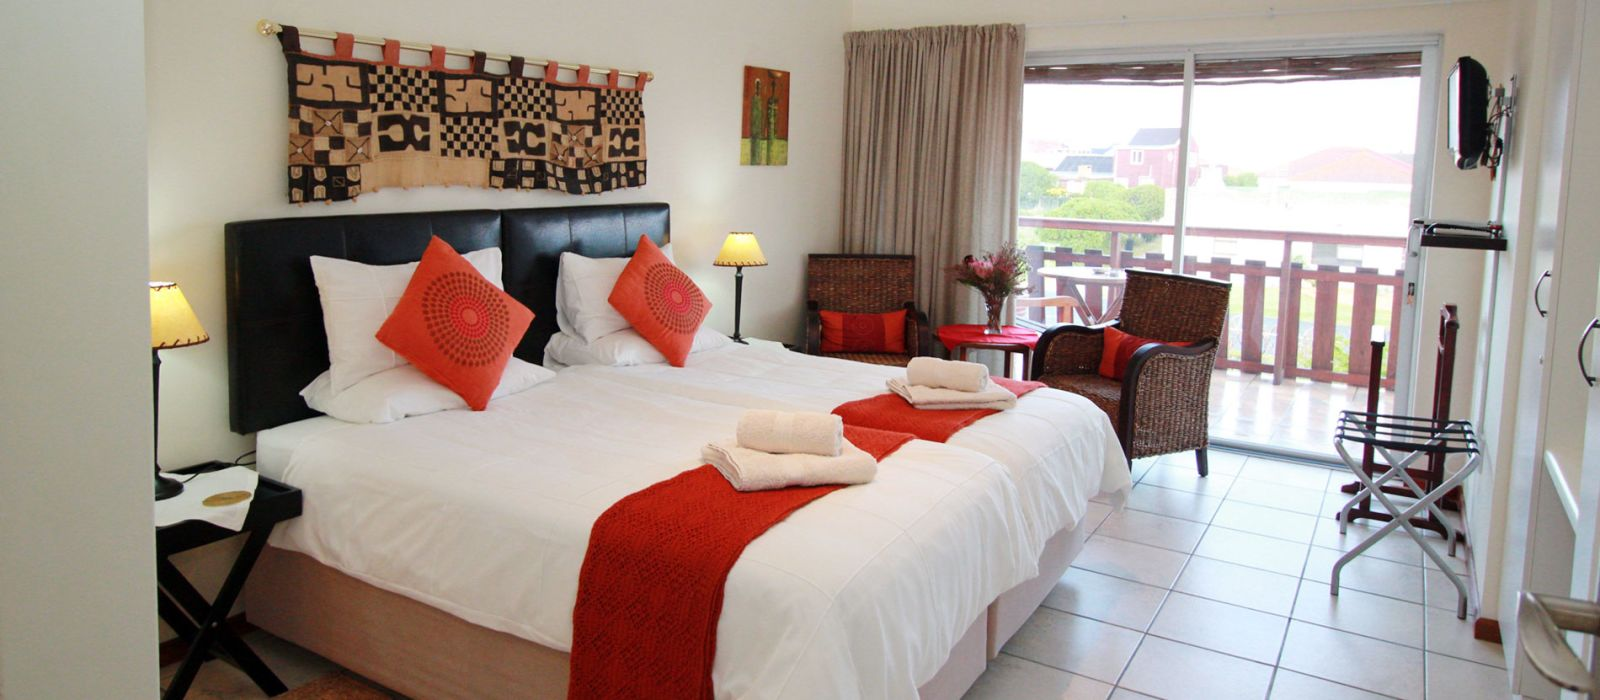 Hotel Haus Giotto South Africa